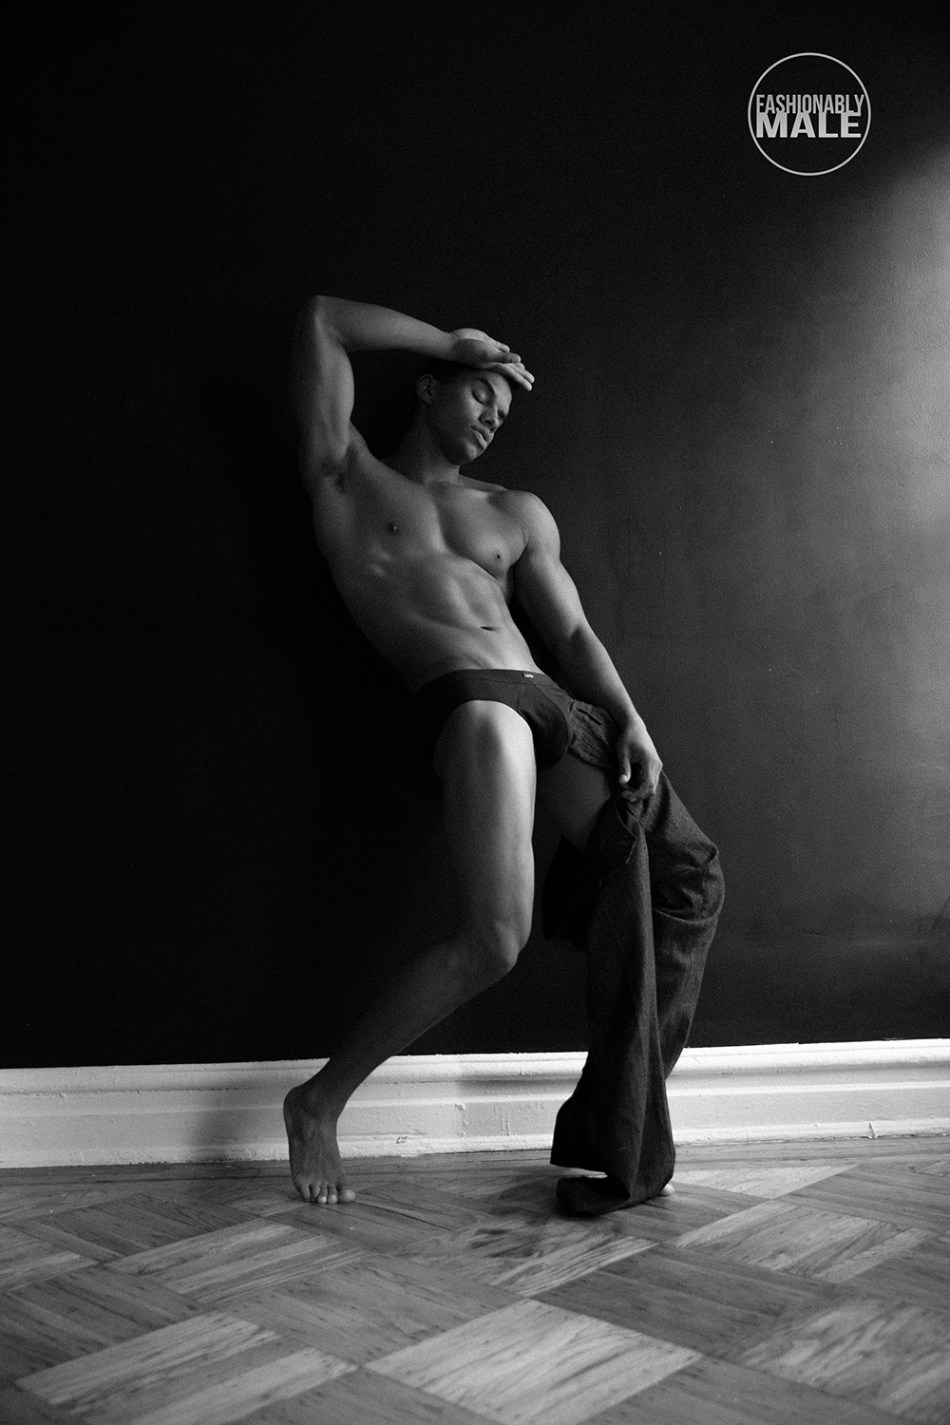 Isaac McKinley by Emmanuel Monsalve for Fashionably Male1